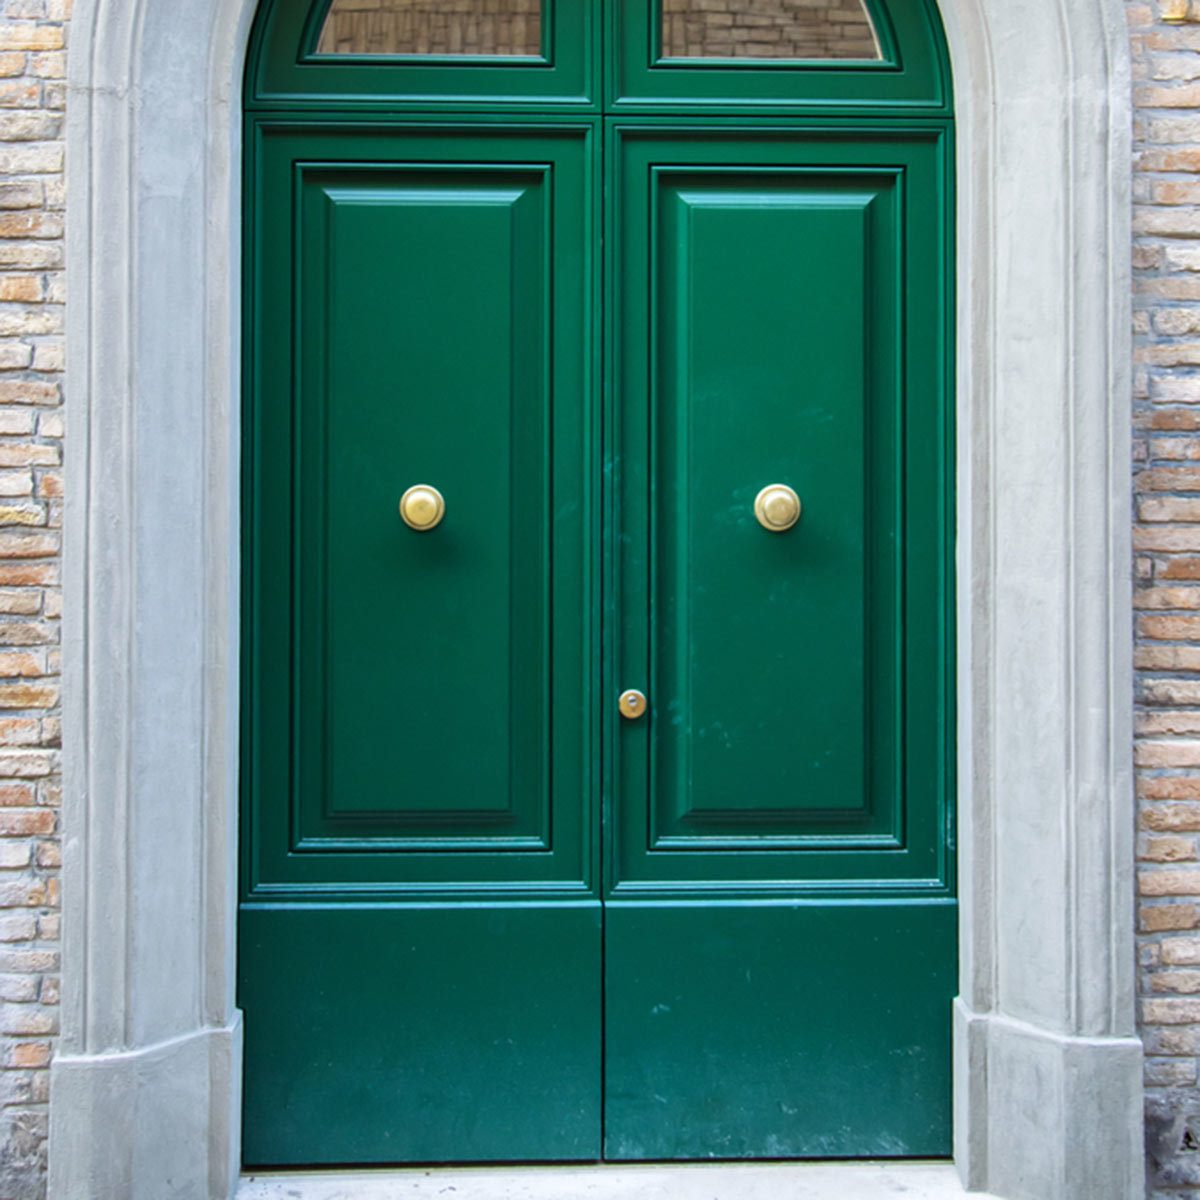 15 Stunning Front Door Colors That Wow Family Handyman The